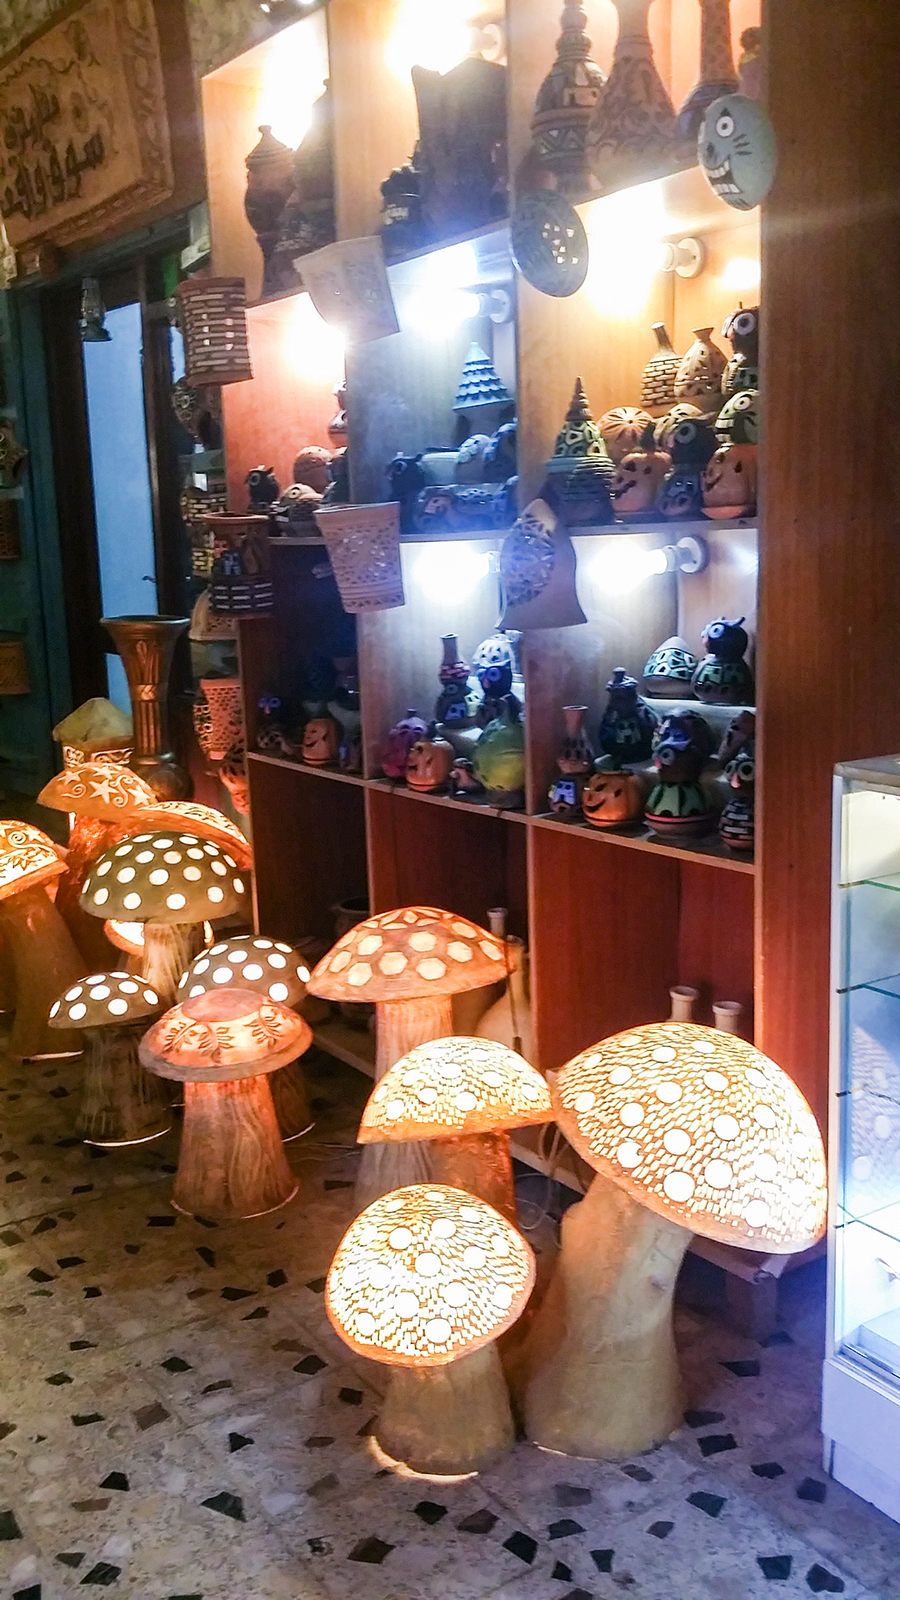 Mushroom lights on display at handicraft shops at Souq Waqif (سوق واقف), Doha, Qatar.